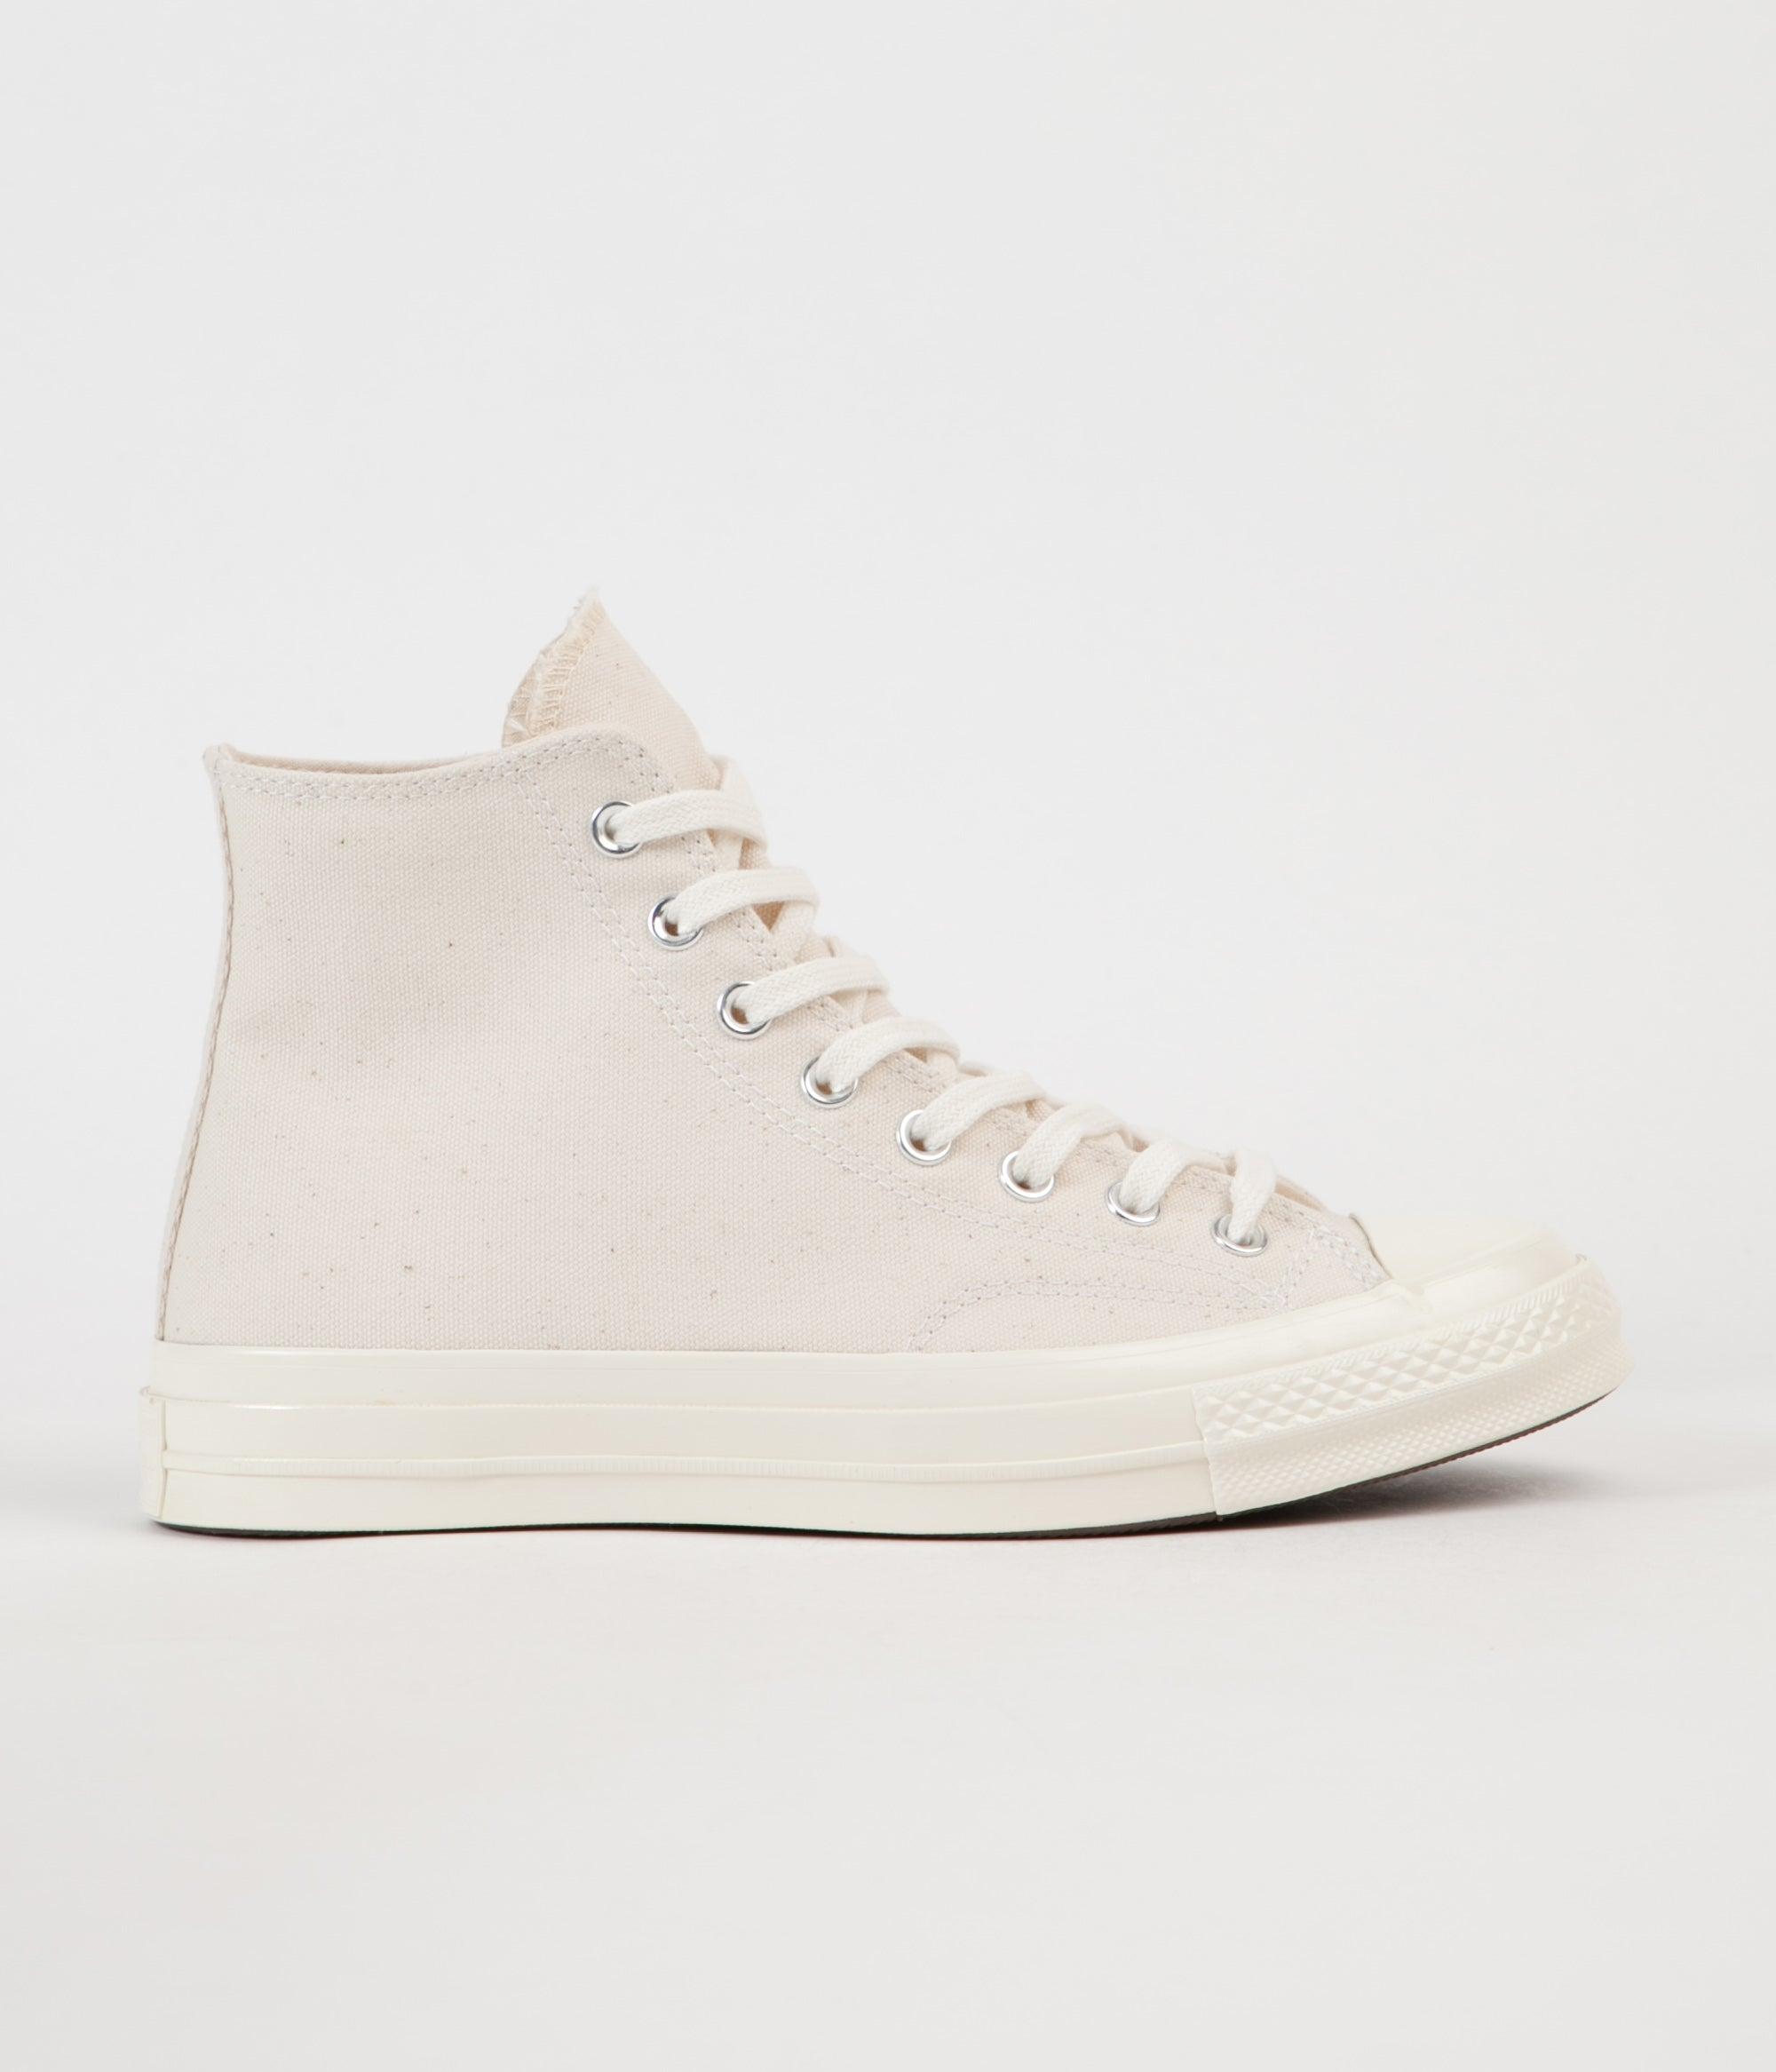 Converse CTAS 70 Hi Shoes - Natural / Clematis Blue / Egret